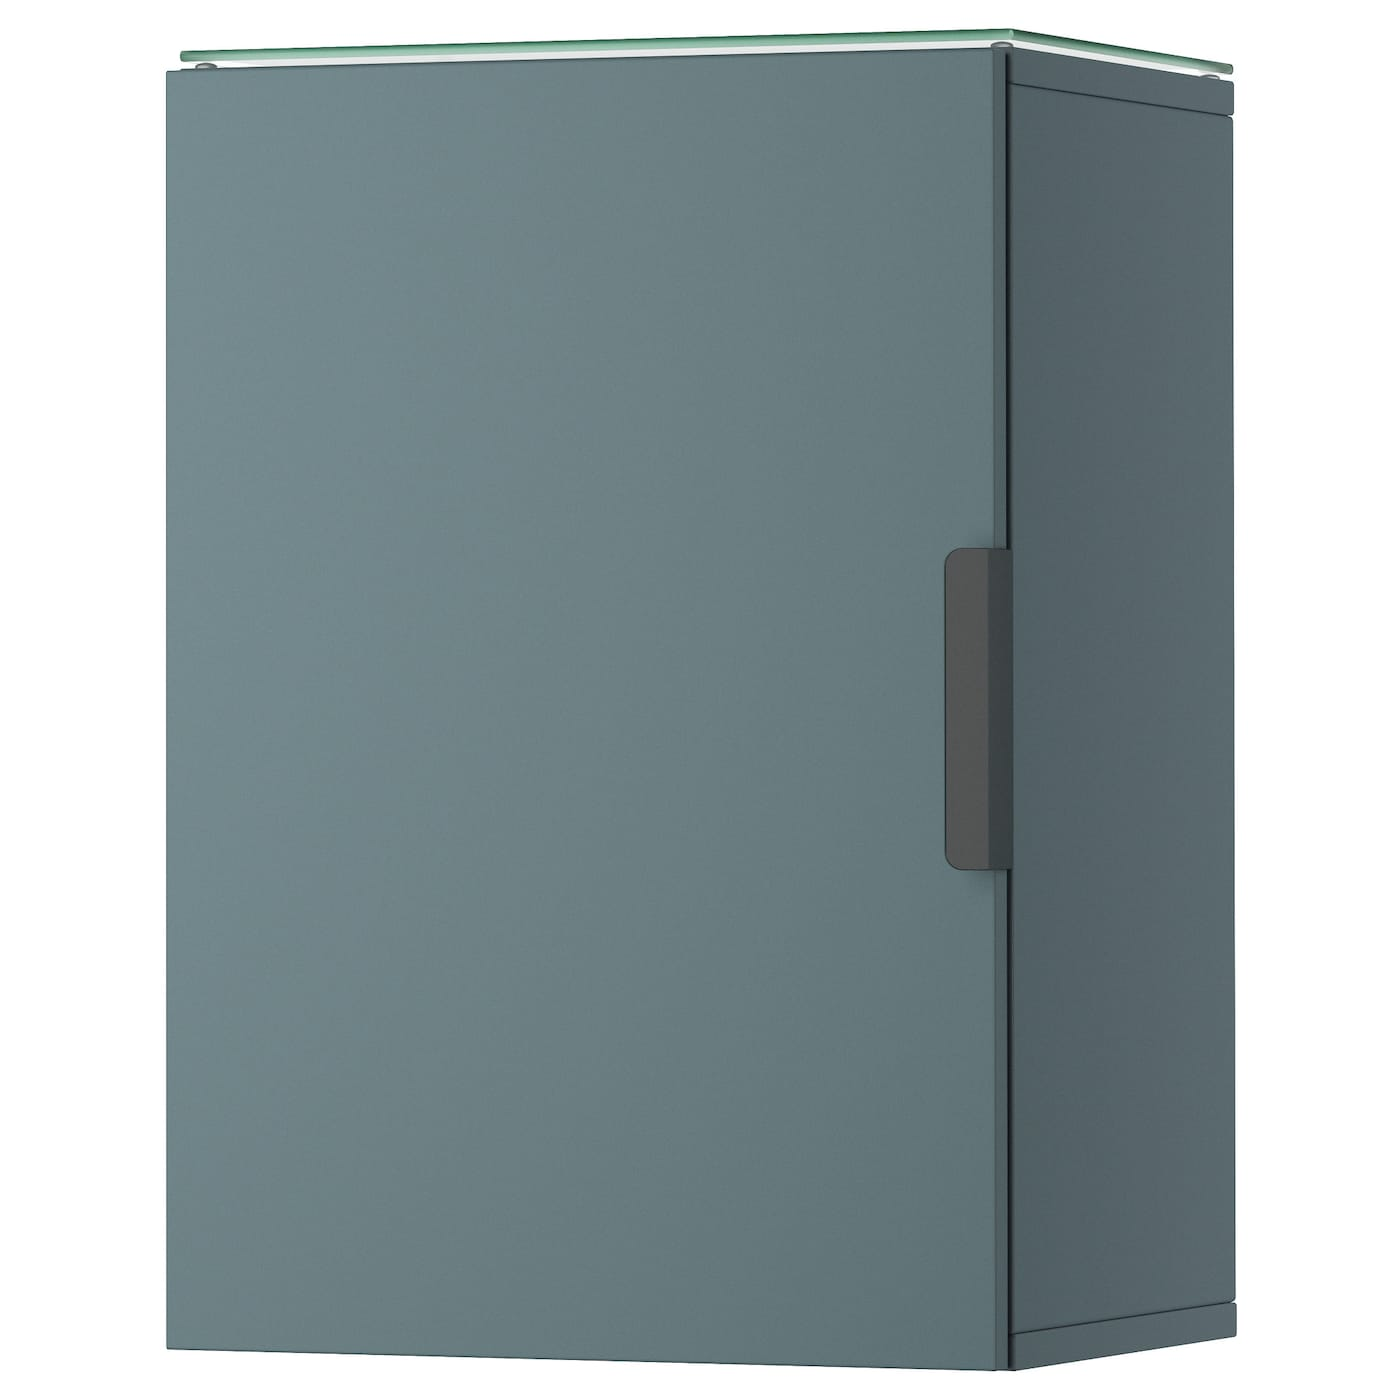 GODMORGON Wall cabinet with 1 door Grey-turquoise 40x32x58 cm - IKEA